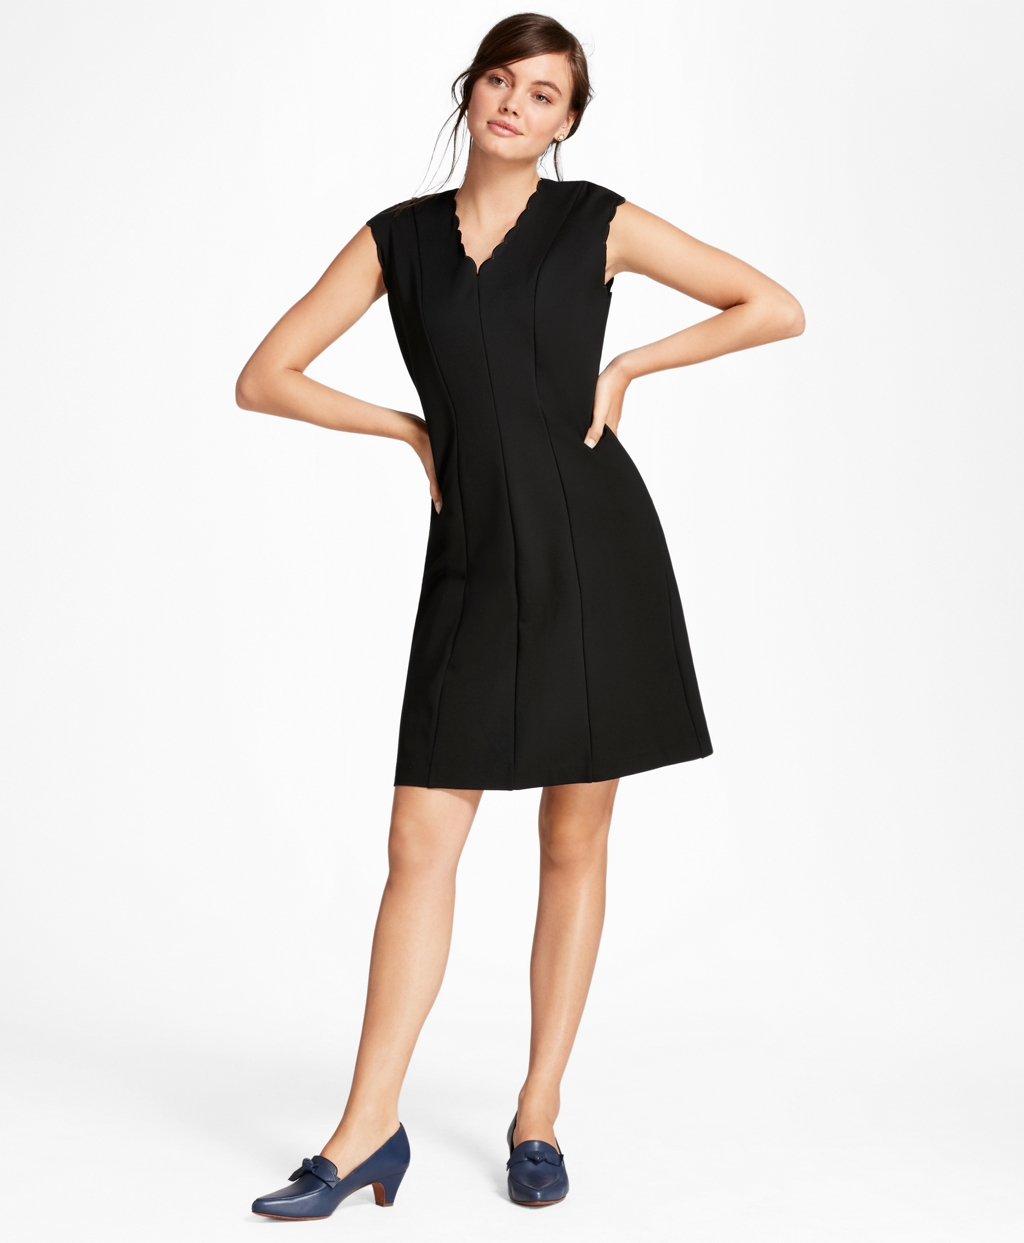 Scalloped Ponte Knit A Line Dress BB AU Ecommerce